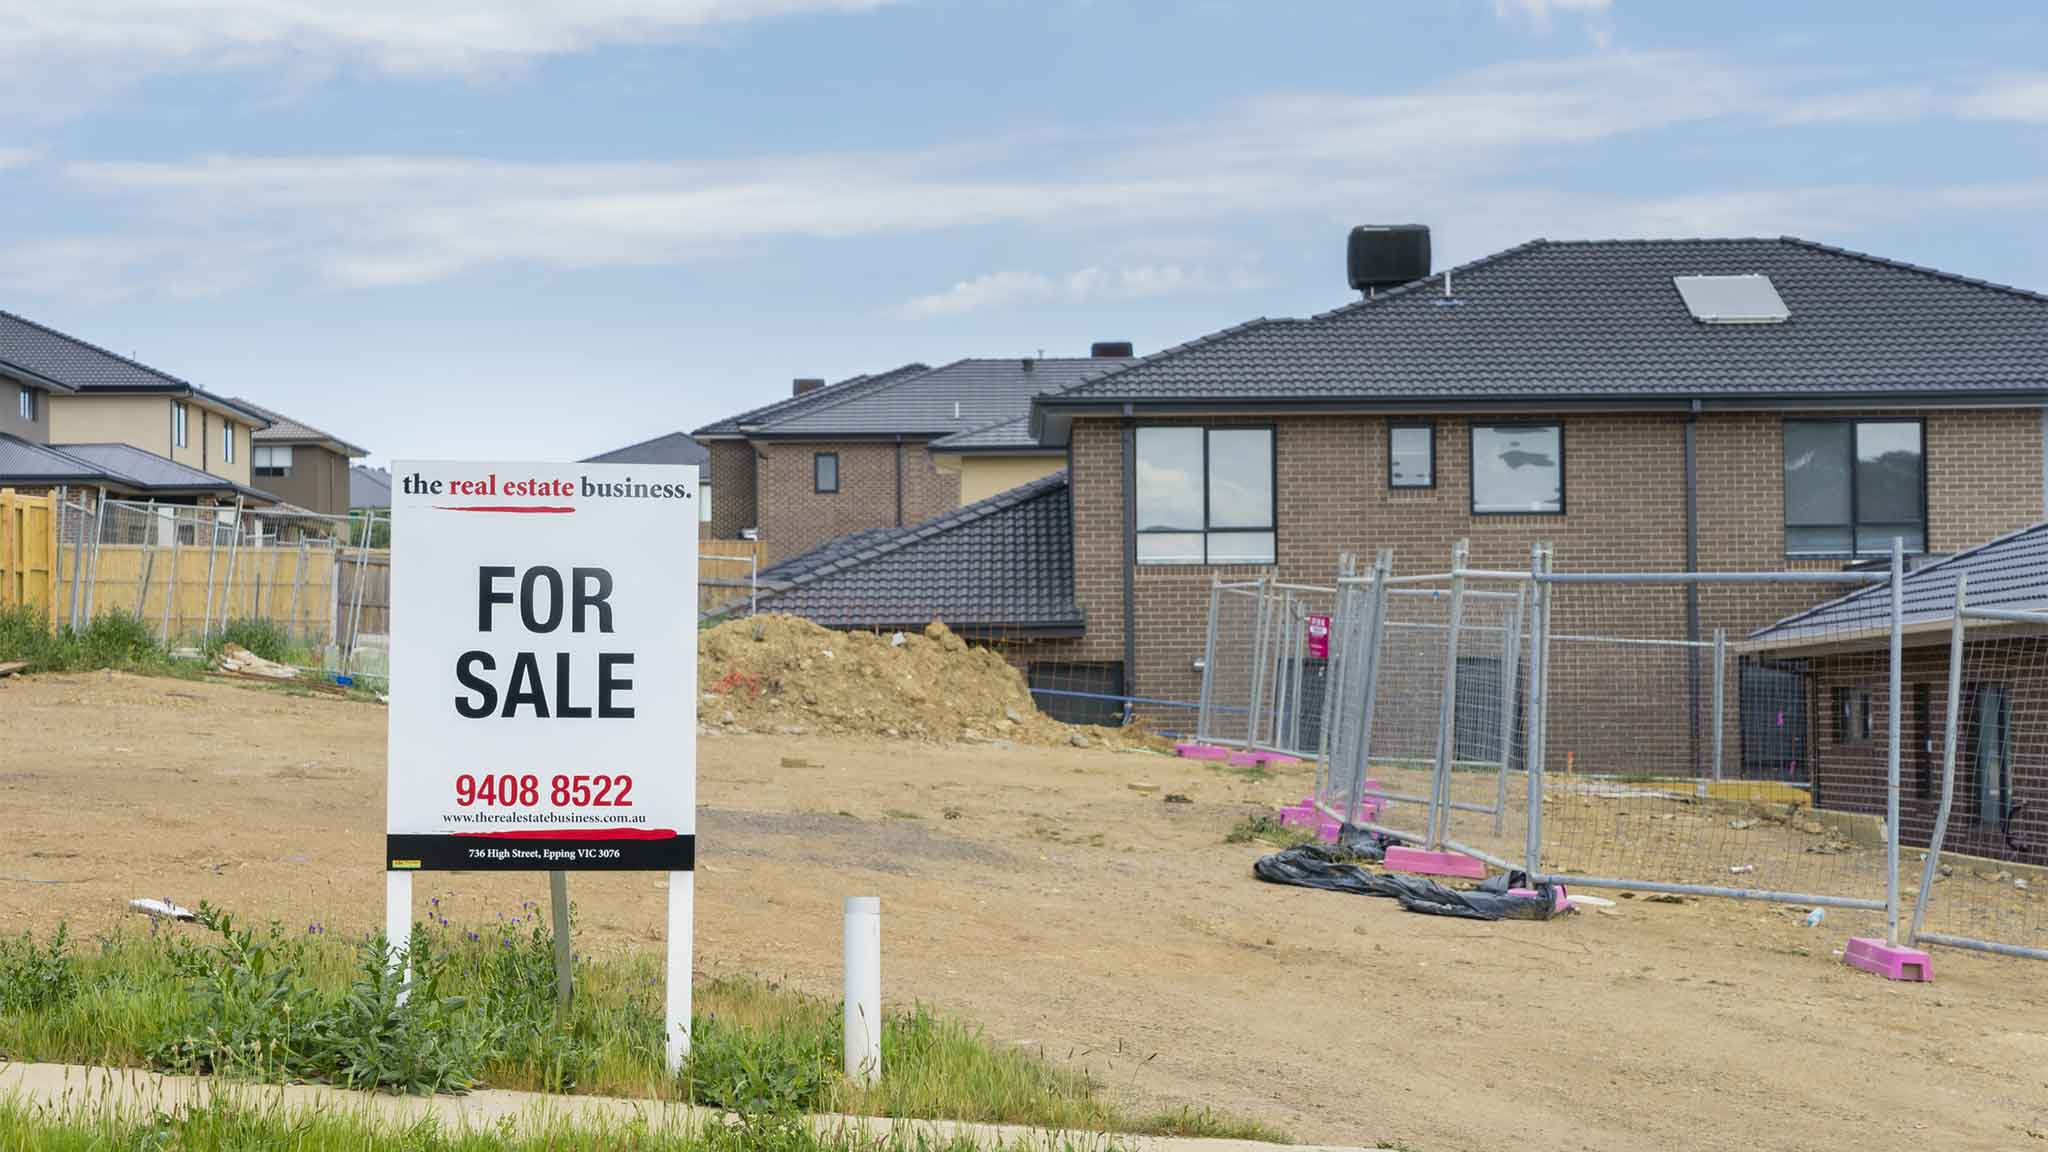 Australia's property boom ends as credit squeeze begins